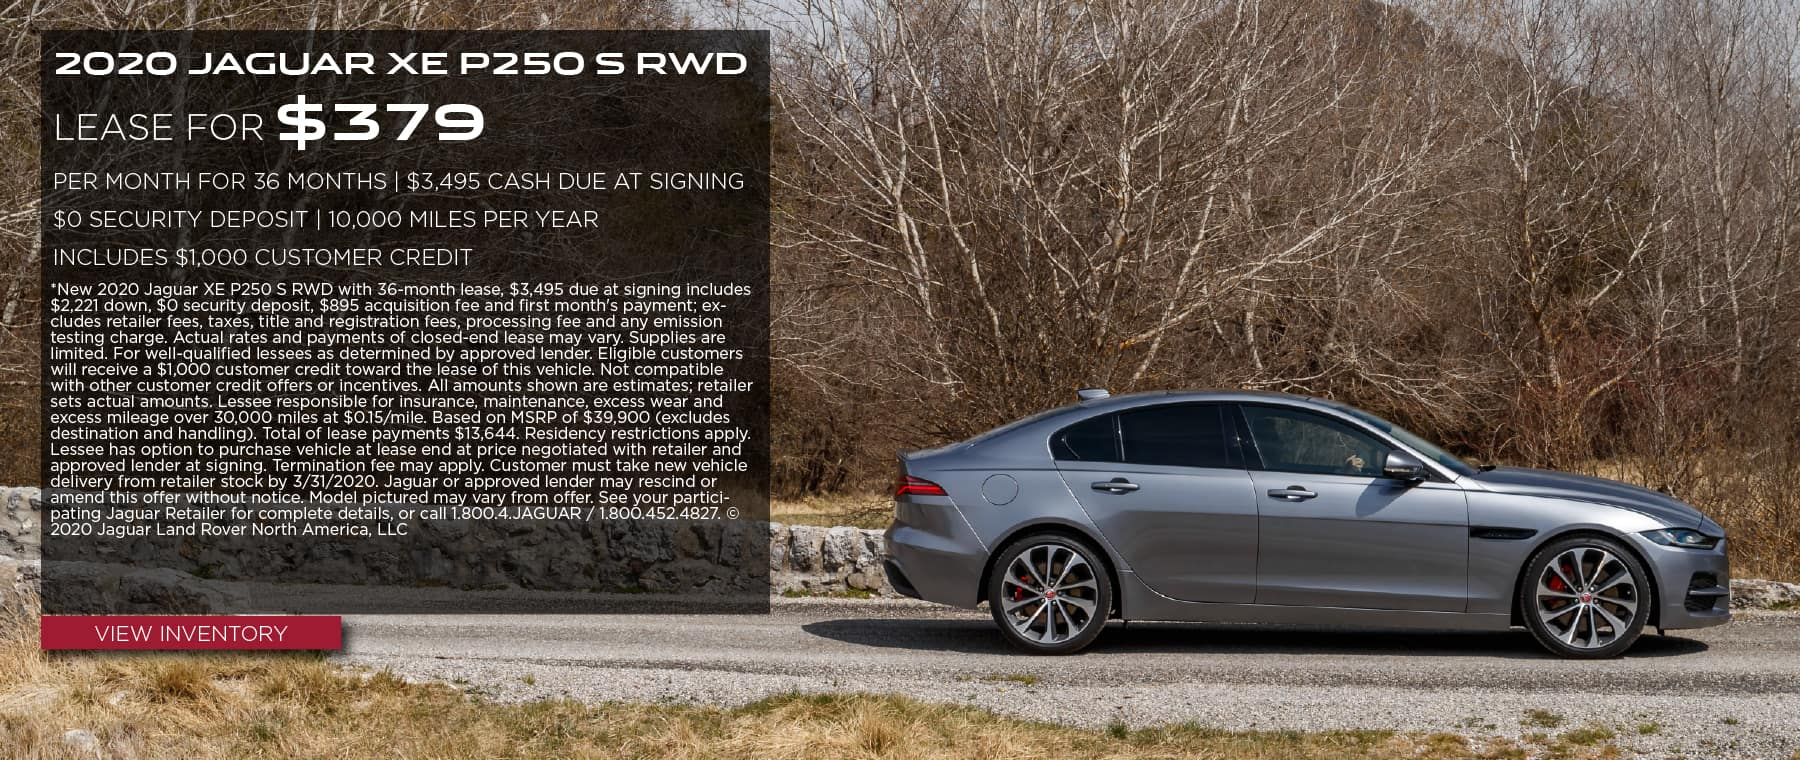 2020 JAGUAR XE P250 S RWD. $379 PER MONTH. 36 MONTH LEASE TERM WITH $3,495 DUE AT SIGNING. INCLUDES $1,000 CUSTOMER CREDIT. $0 SECURITY DEPOSIT. 10,000 MILES PER YEAR. OFFER ENDS 3/31/2020. GRAY JAGUAR XE DRIVING DOWN COUNTRY ROAD.